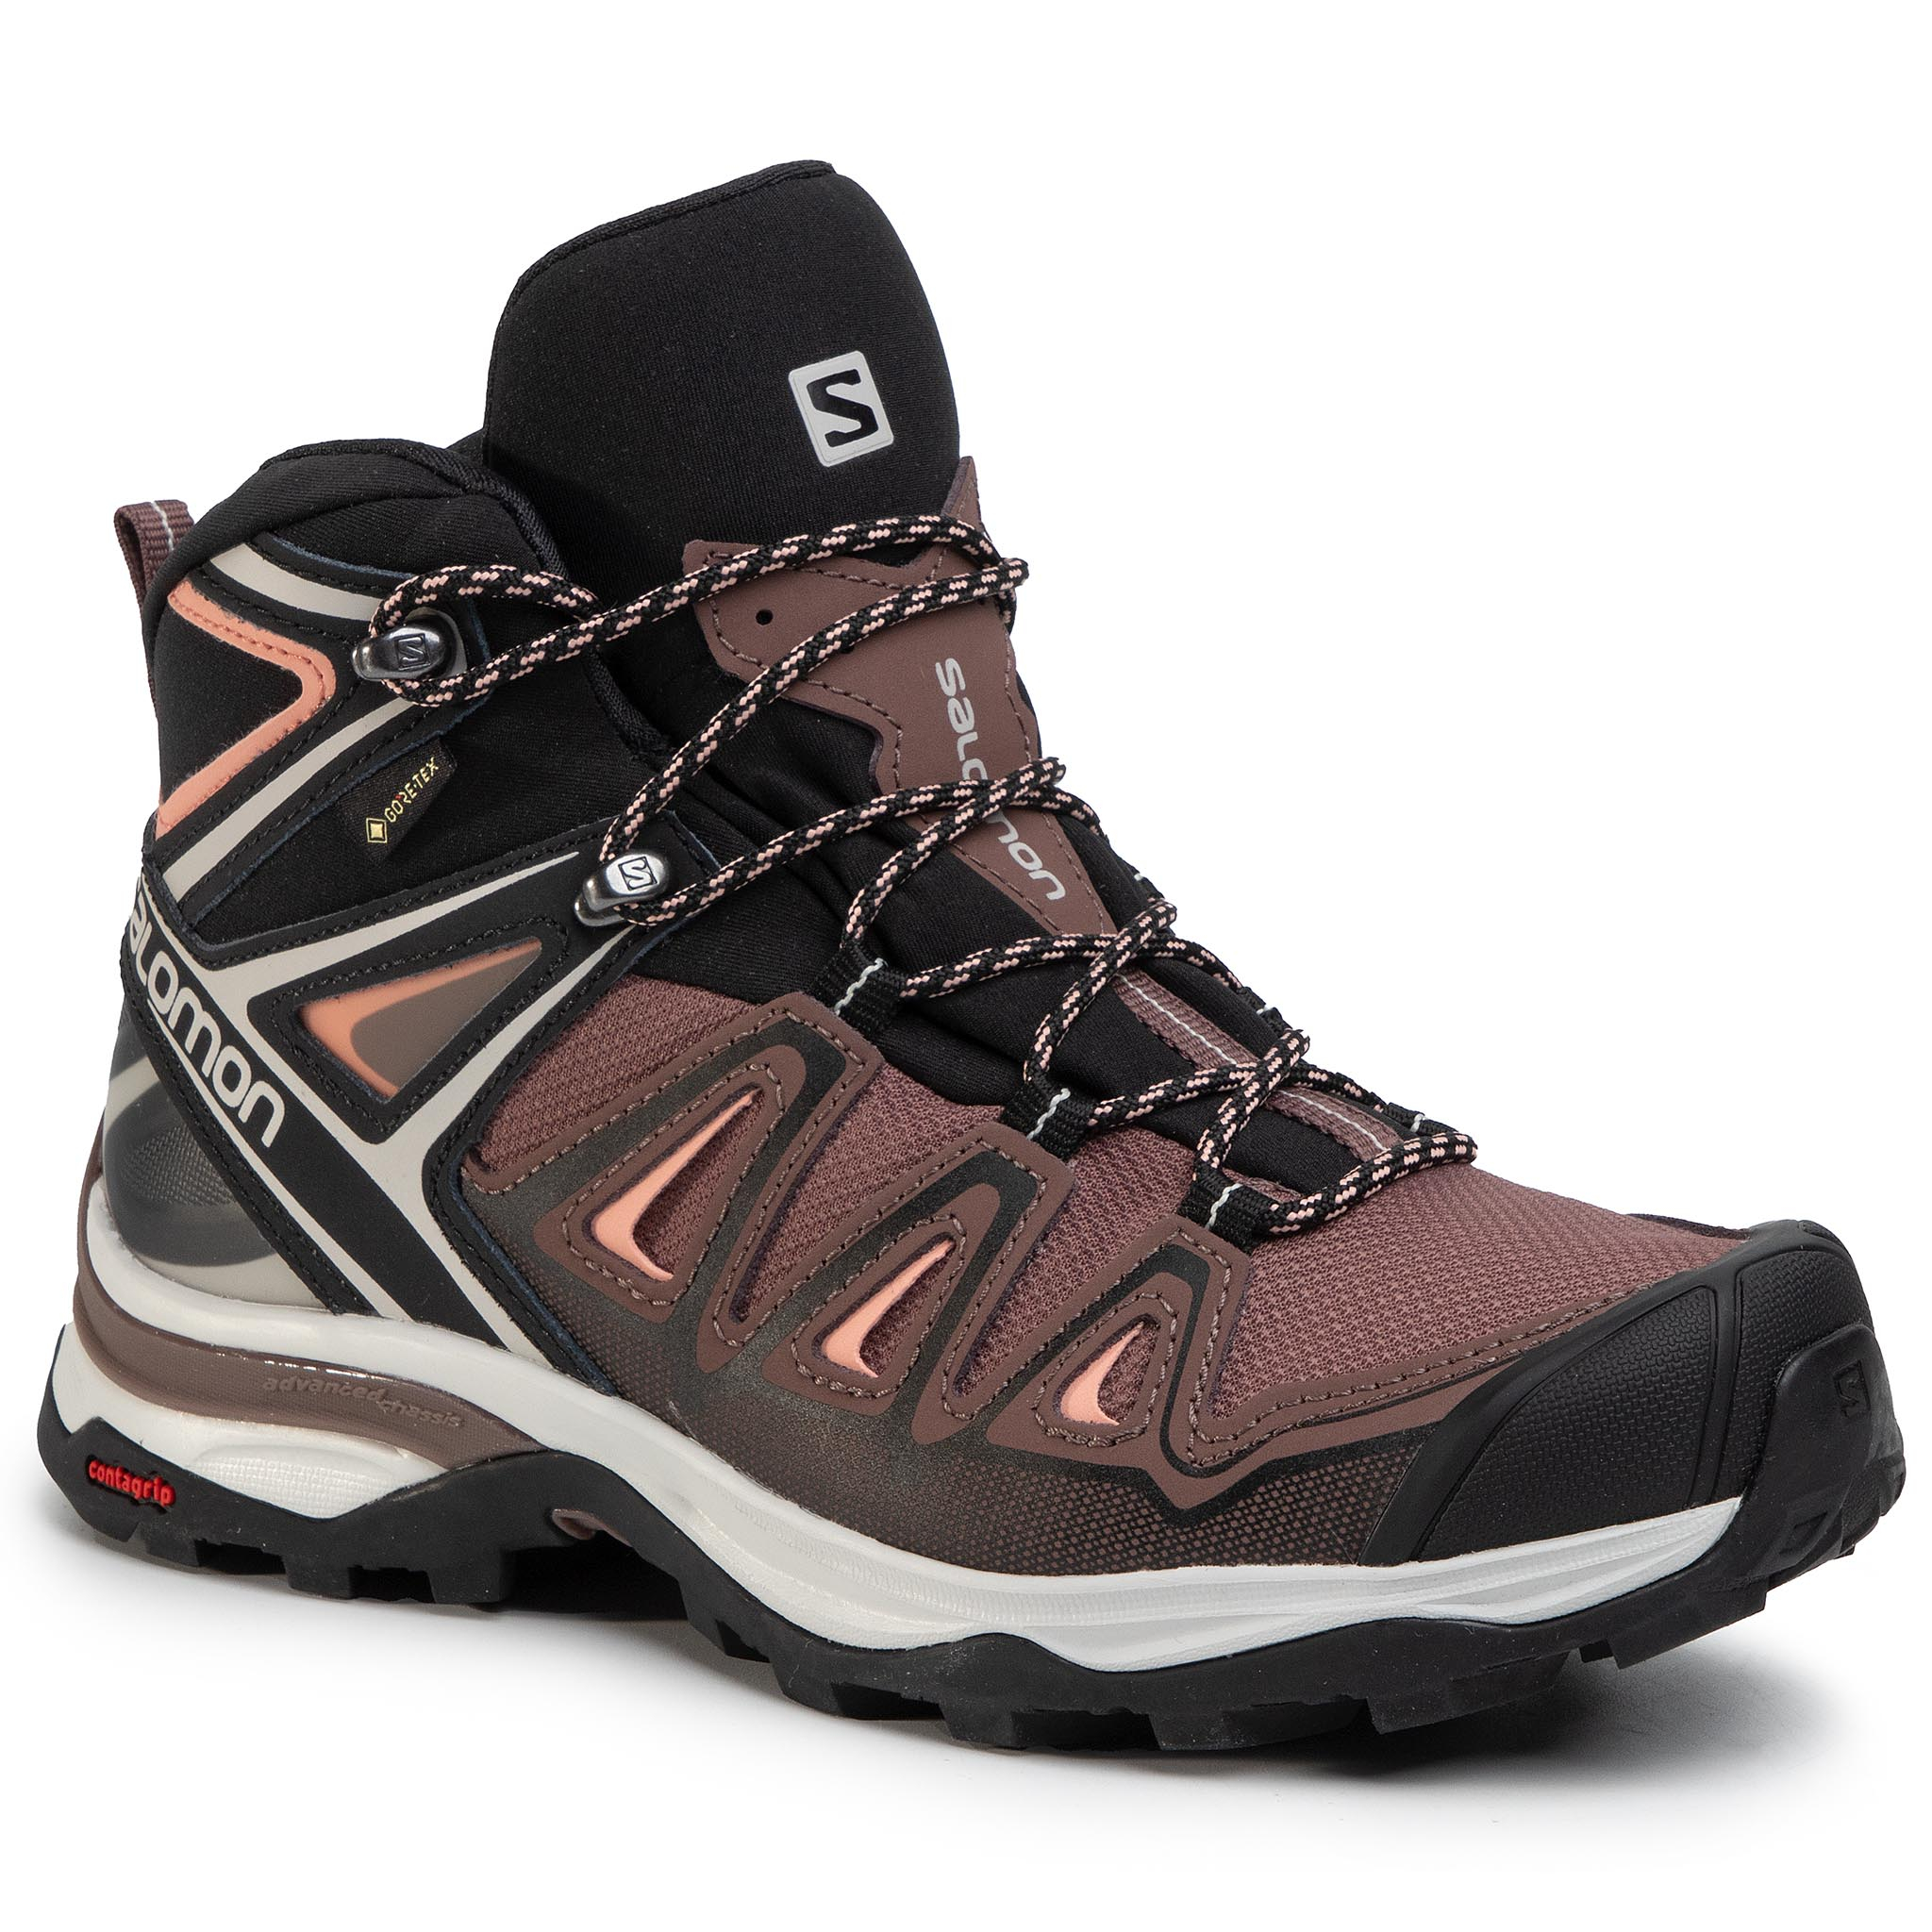 Trekkings Salomon - X Ultra 3 Mid Gtx W Gore-Tex 408144 25 W0 Peppercorn/Black/Coral Aimond imagine epantofi.ro 2021